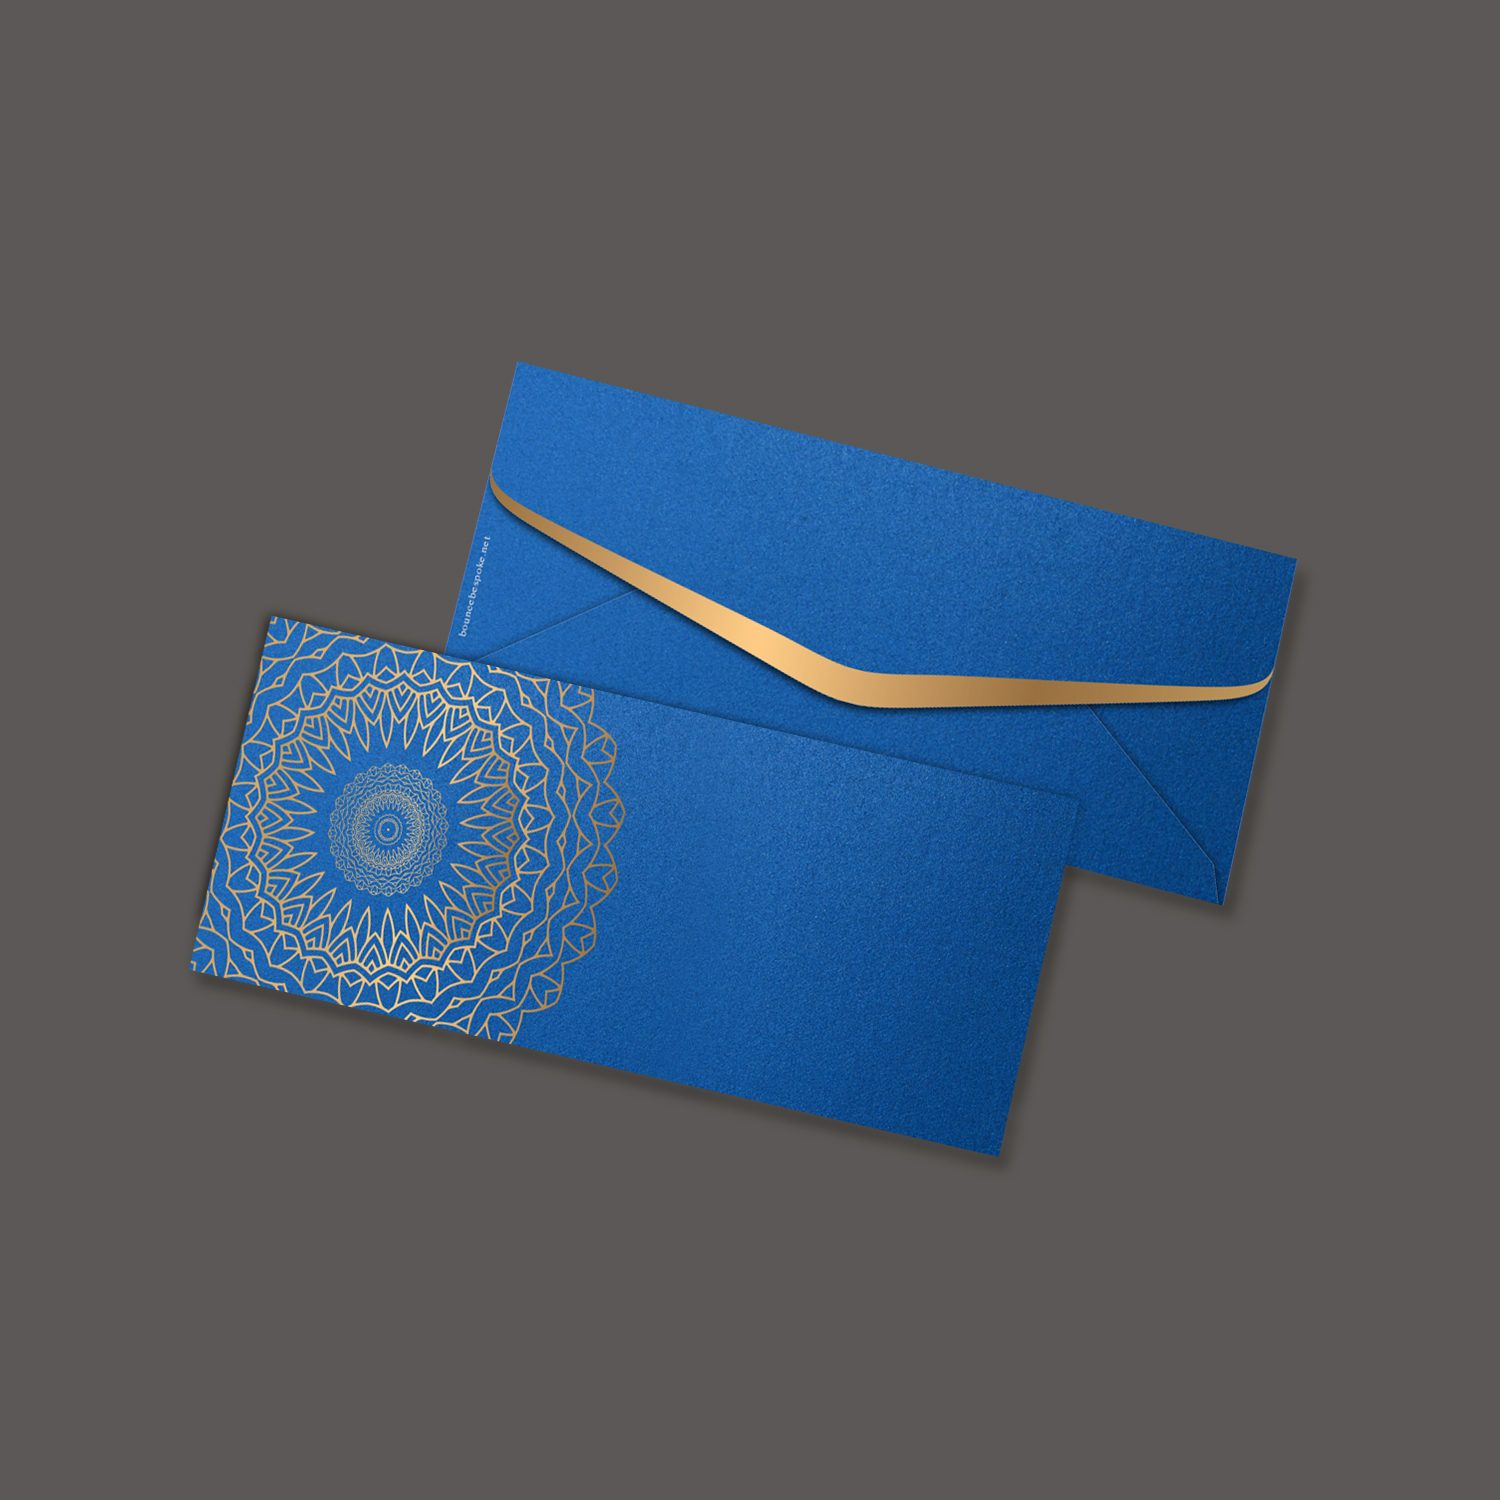 Floral Ripple Blue Gift Envelope